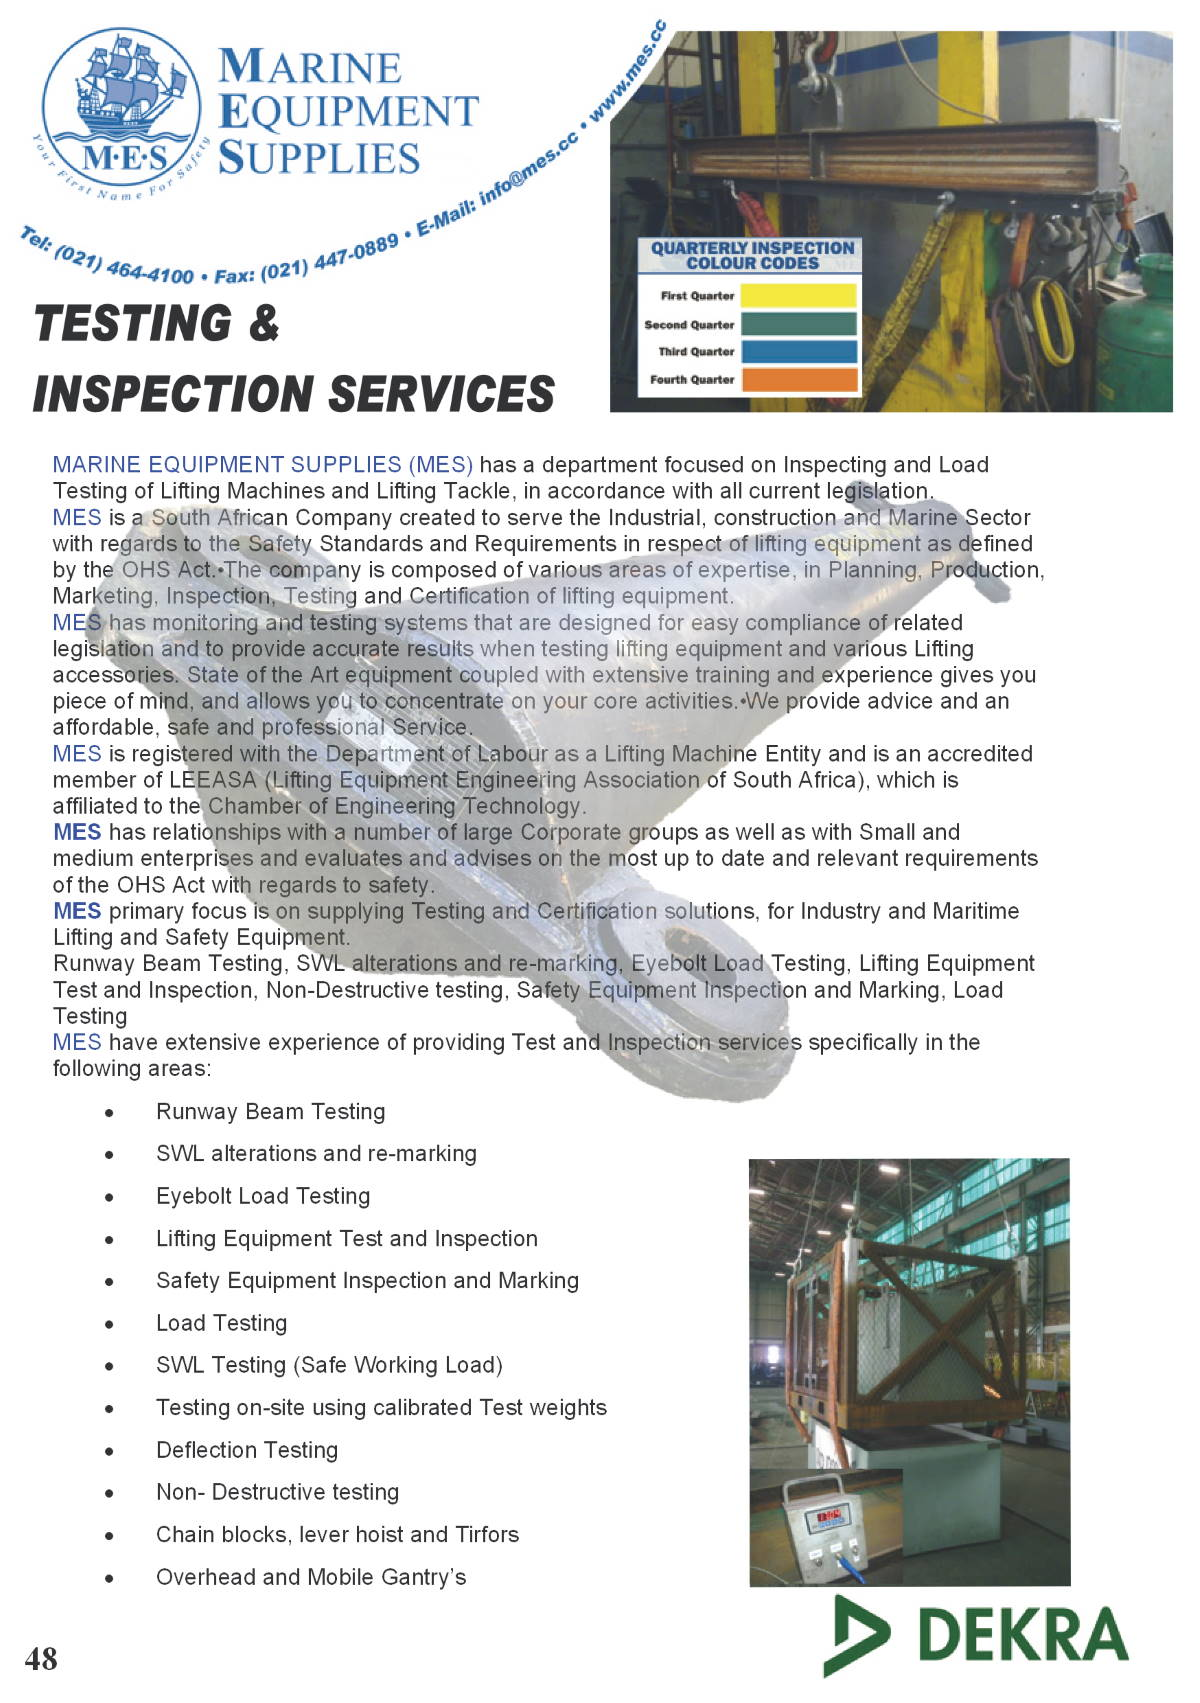 Marine Testing & Inspection Services